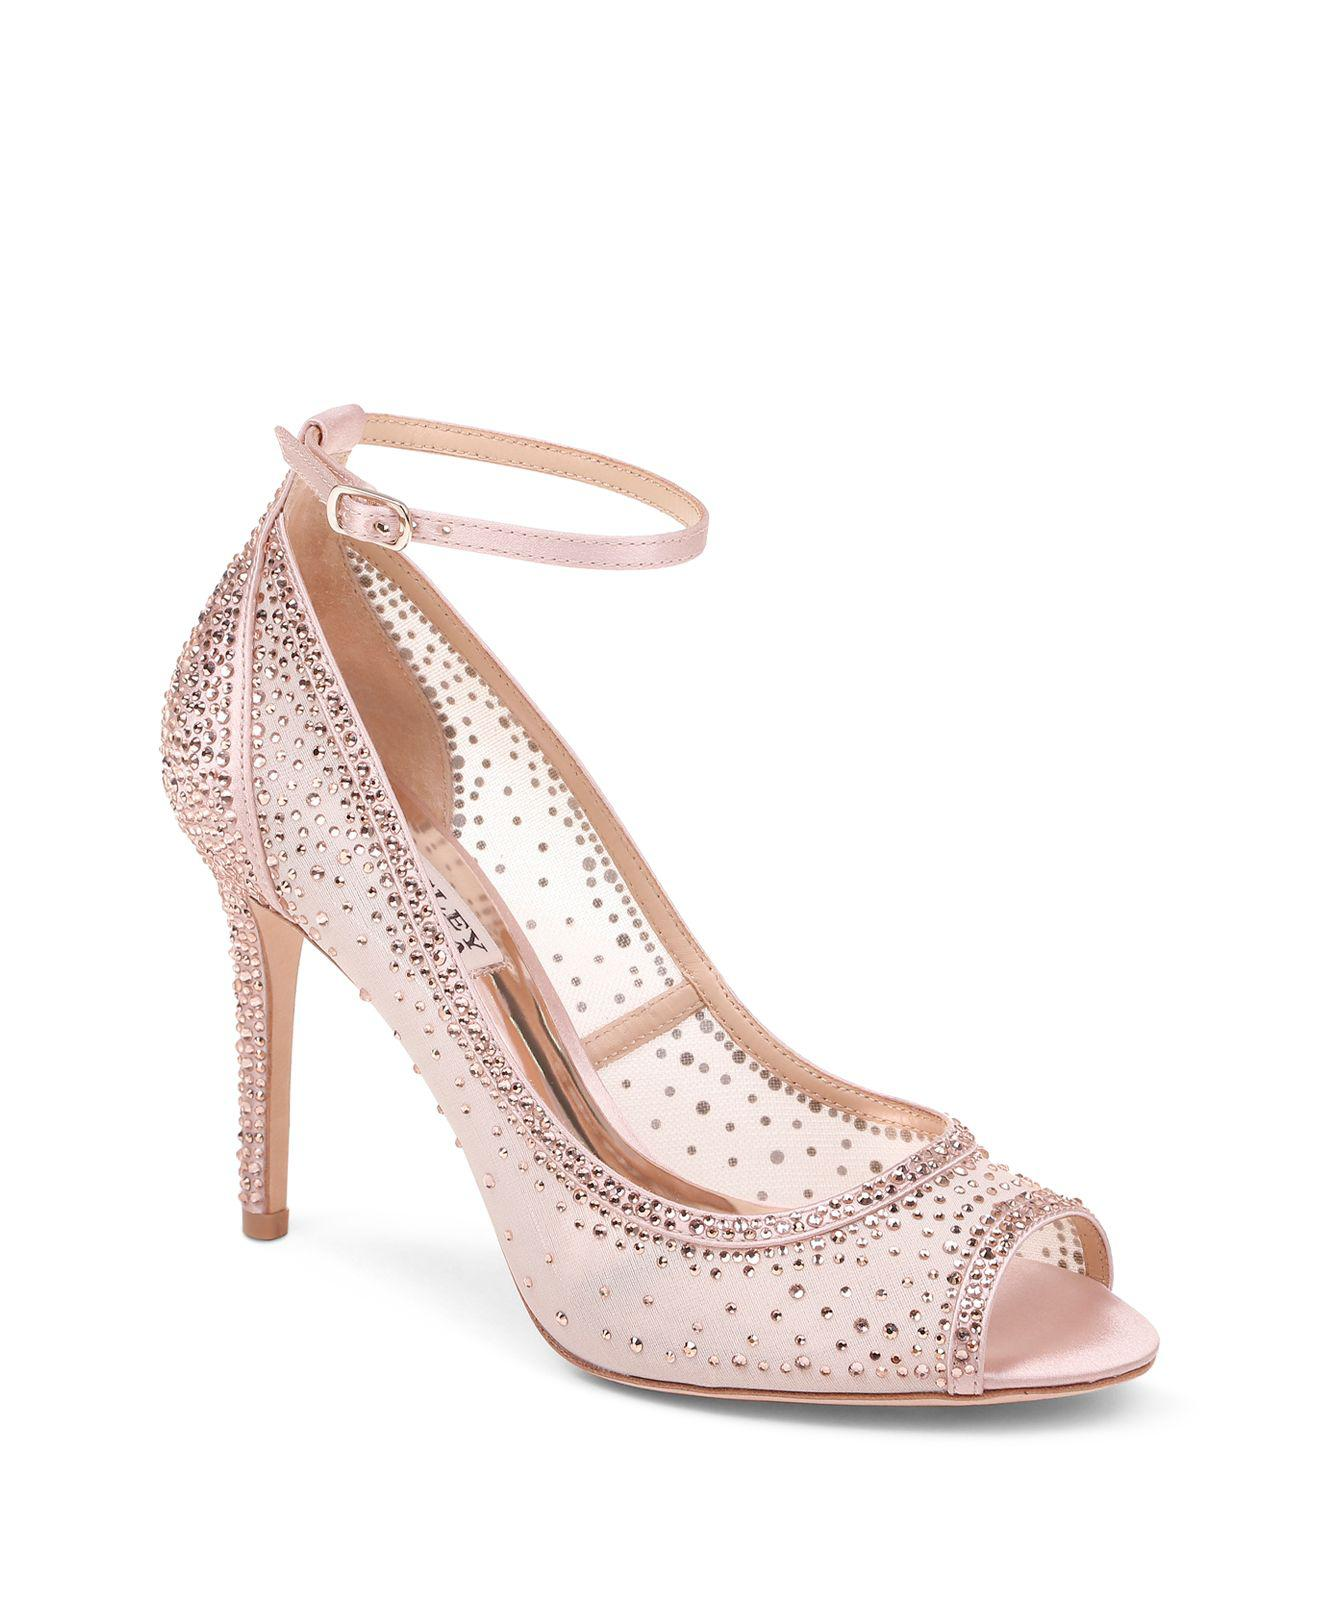 prices cheap price discount low price fee shipping Badgley Mischka Mesh Peep-Toe Pumps looking for online 6rmhFHx7